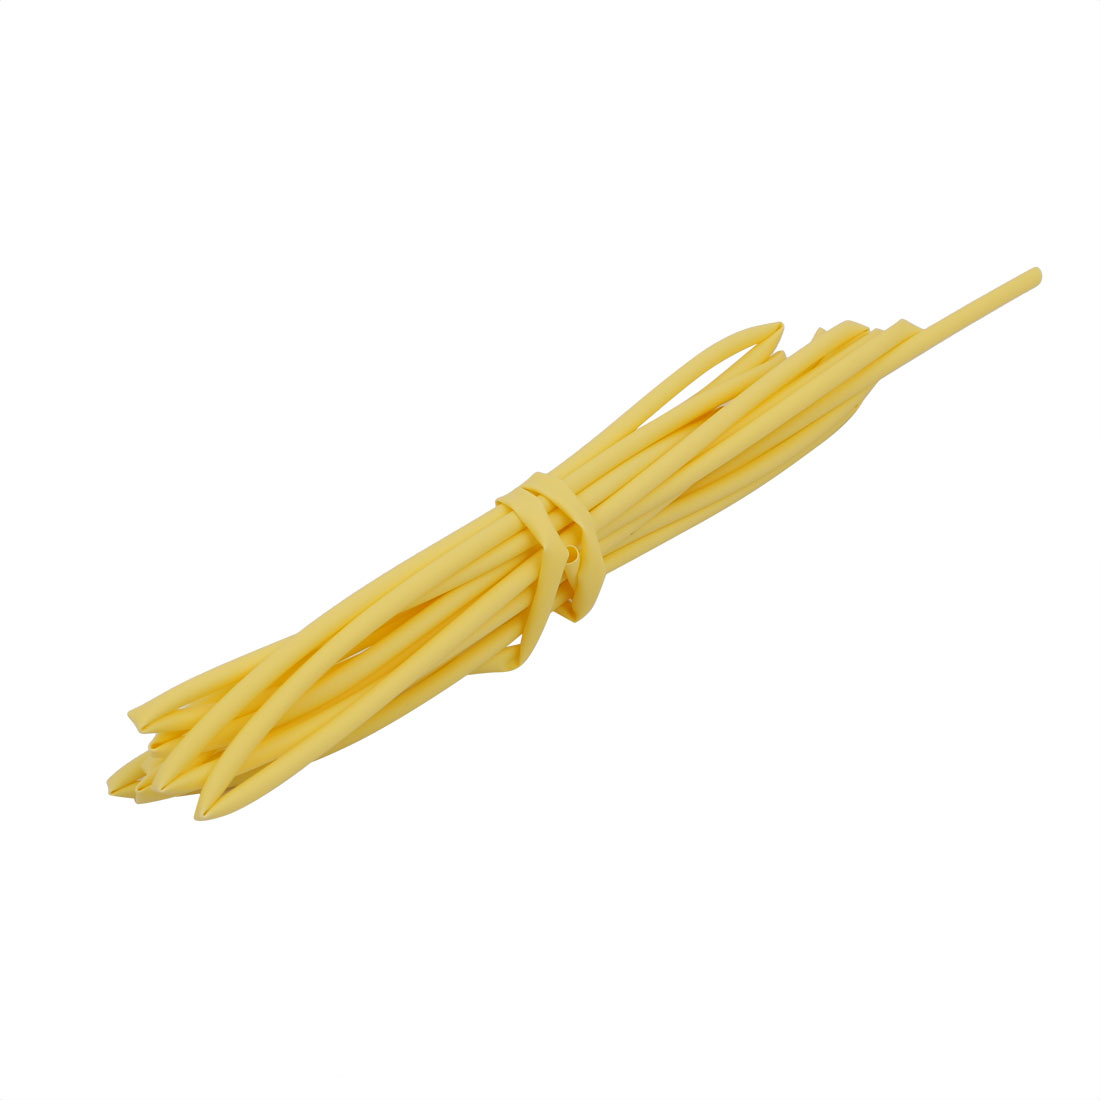 2M 0.06in Inner Dia Polyolefin Flame Retardant Tube Yellow for Wire Repairing